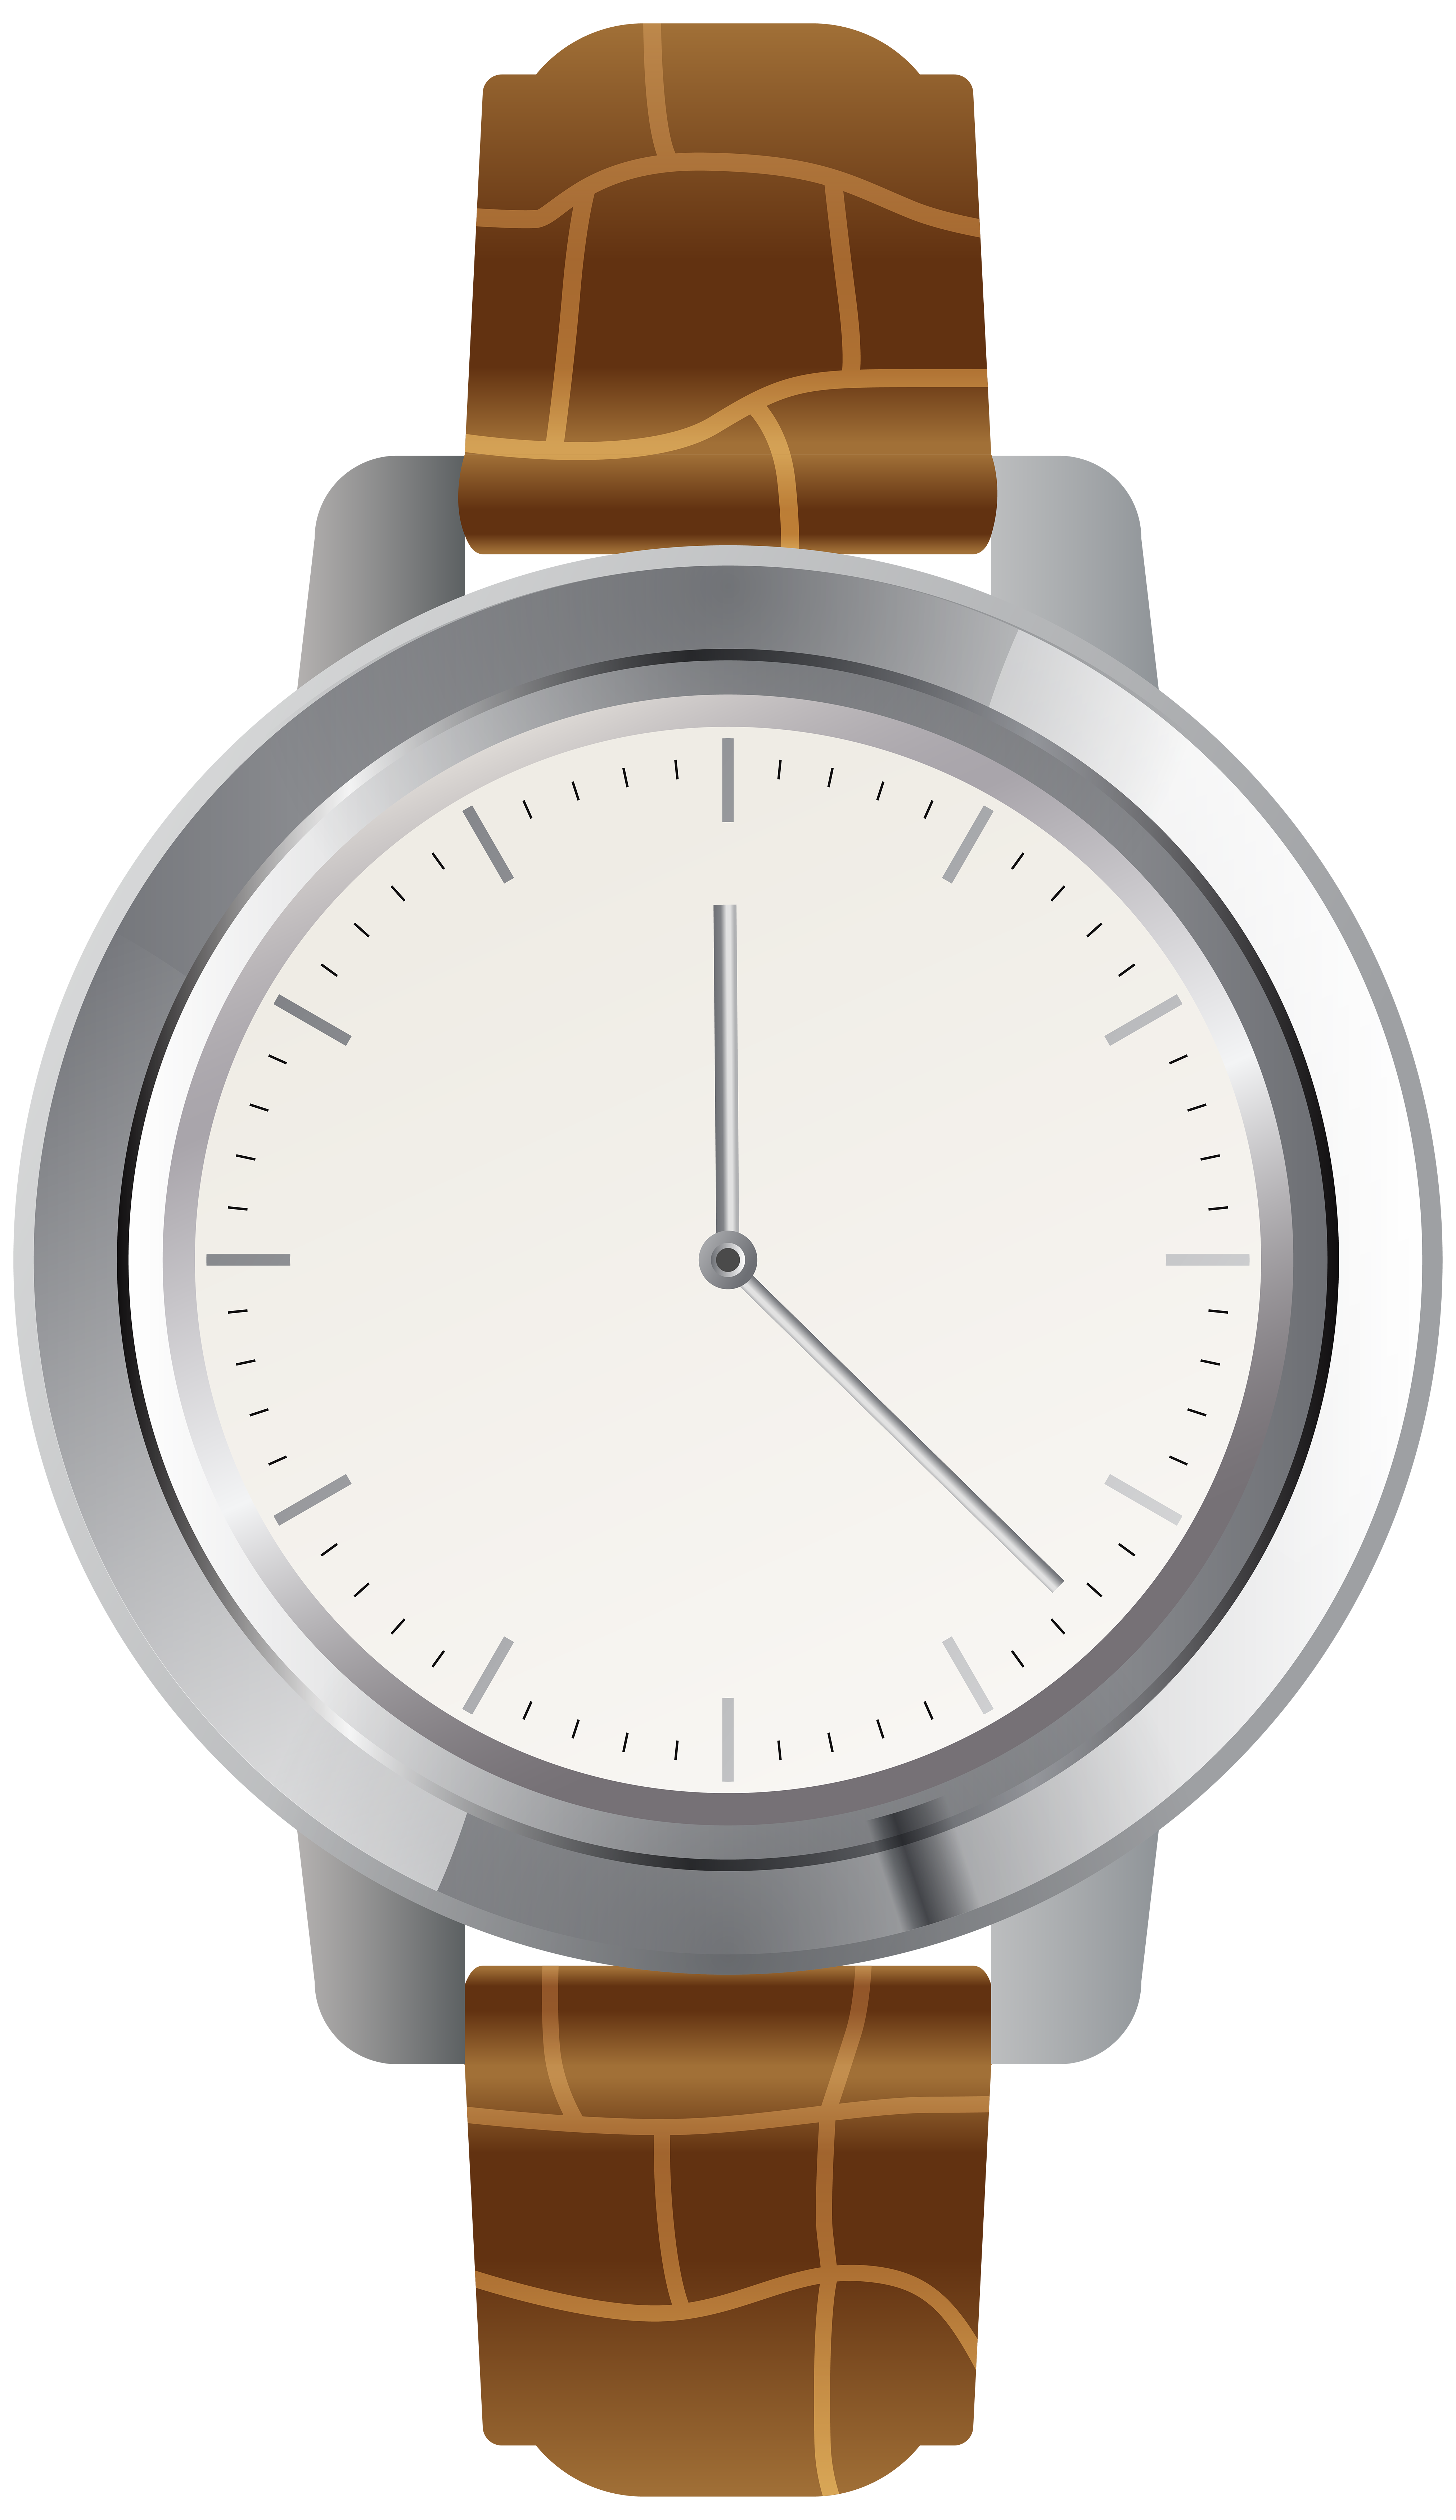 watch png